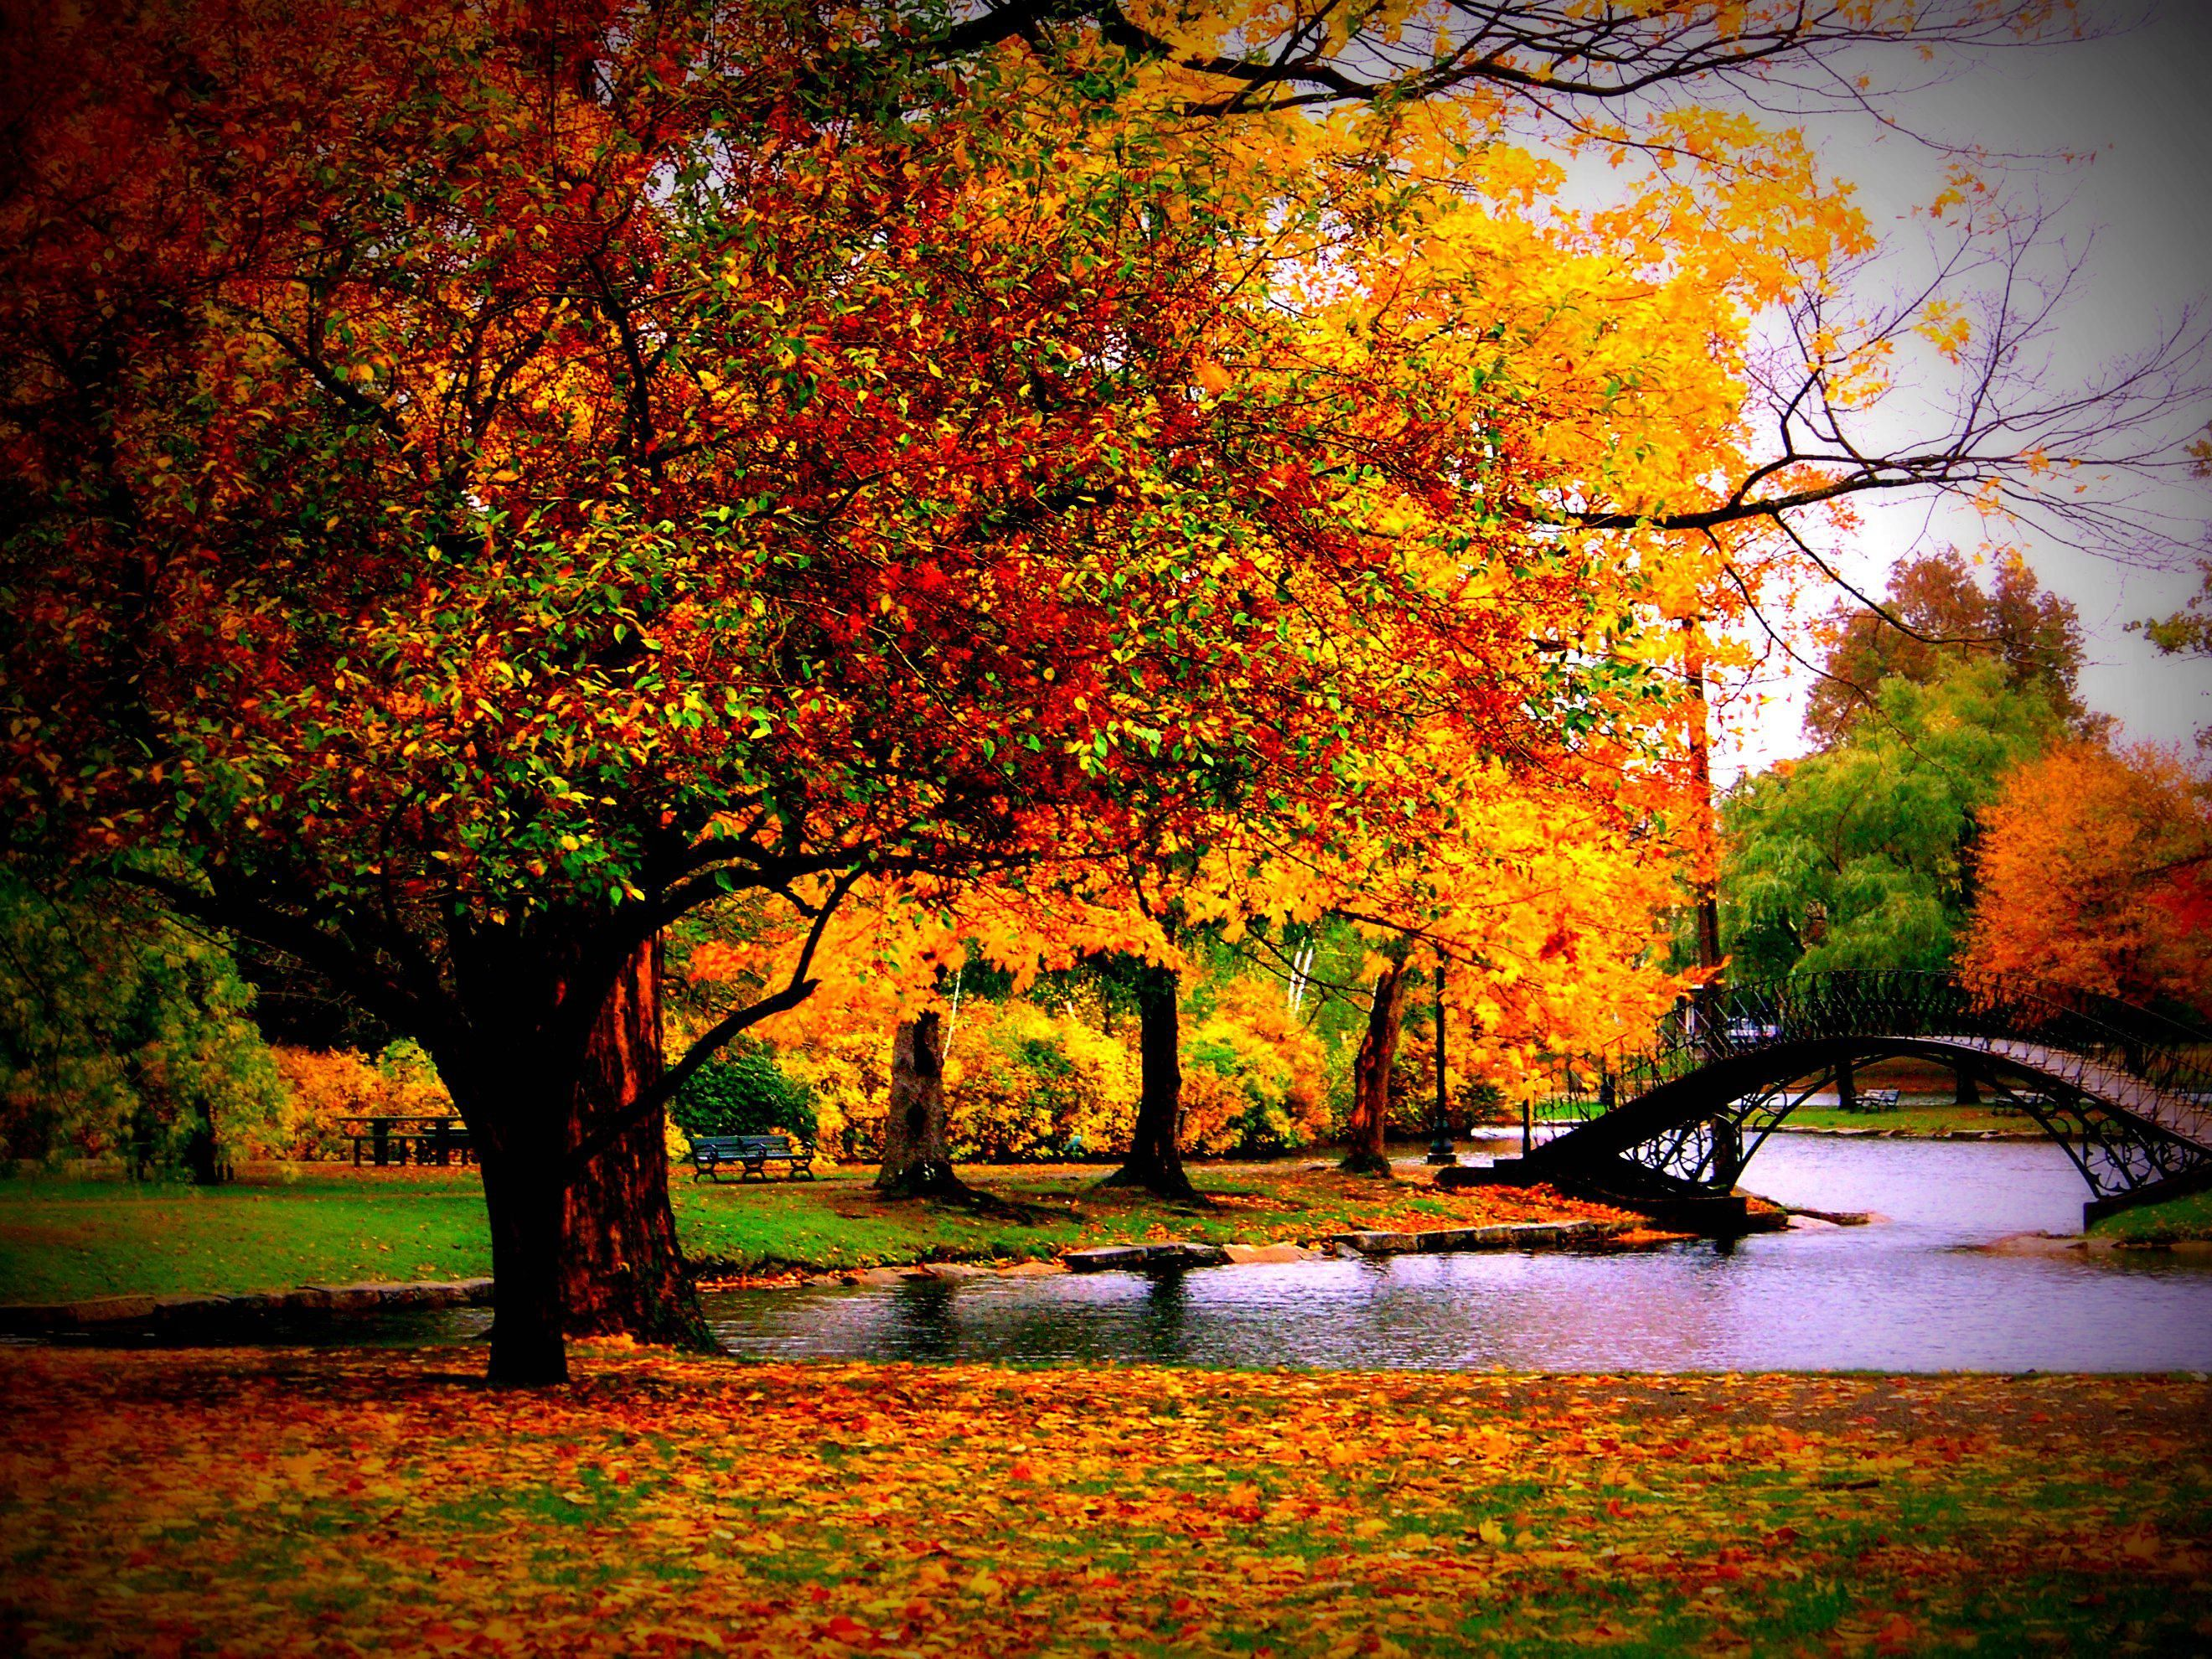 Wallpaper Collection 37 Best Free Hd Fall Desktop Wallpaper Background To Download Pc Mo In 2020 Desktop Wallpaper Fall Scenery Wallpaper Fall Desktop Backgrounds